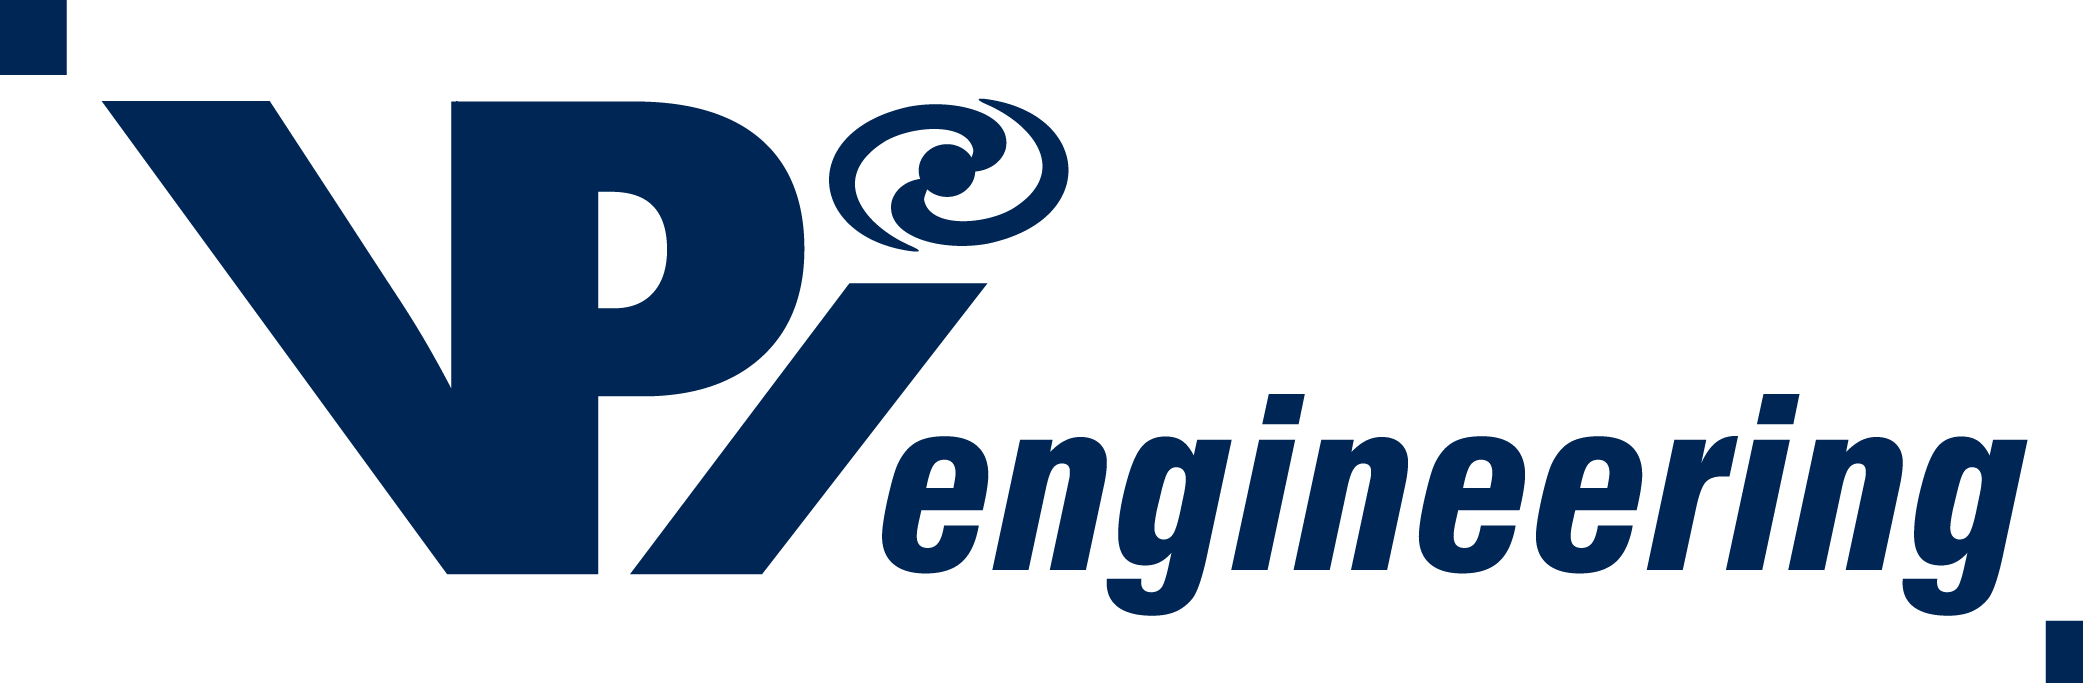 vpi-engineering-logo-final [Converted]